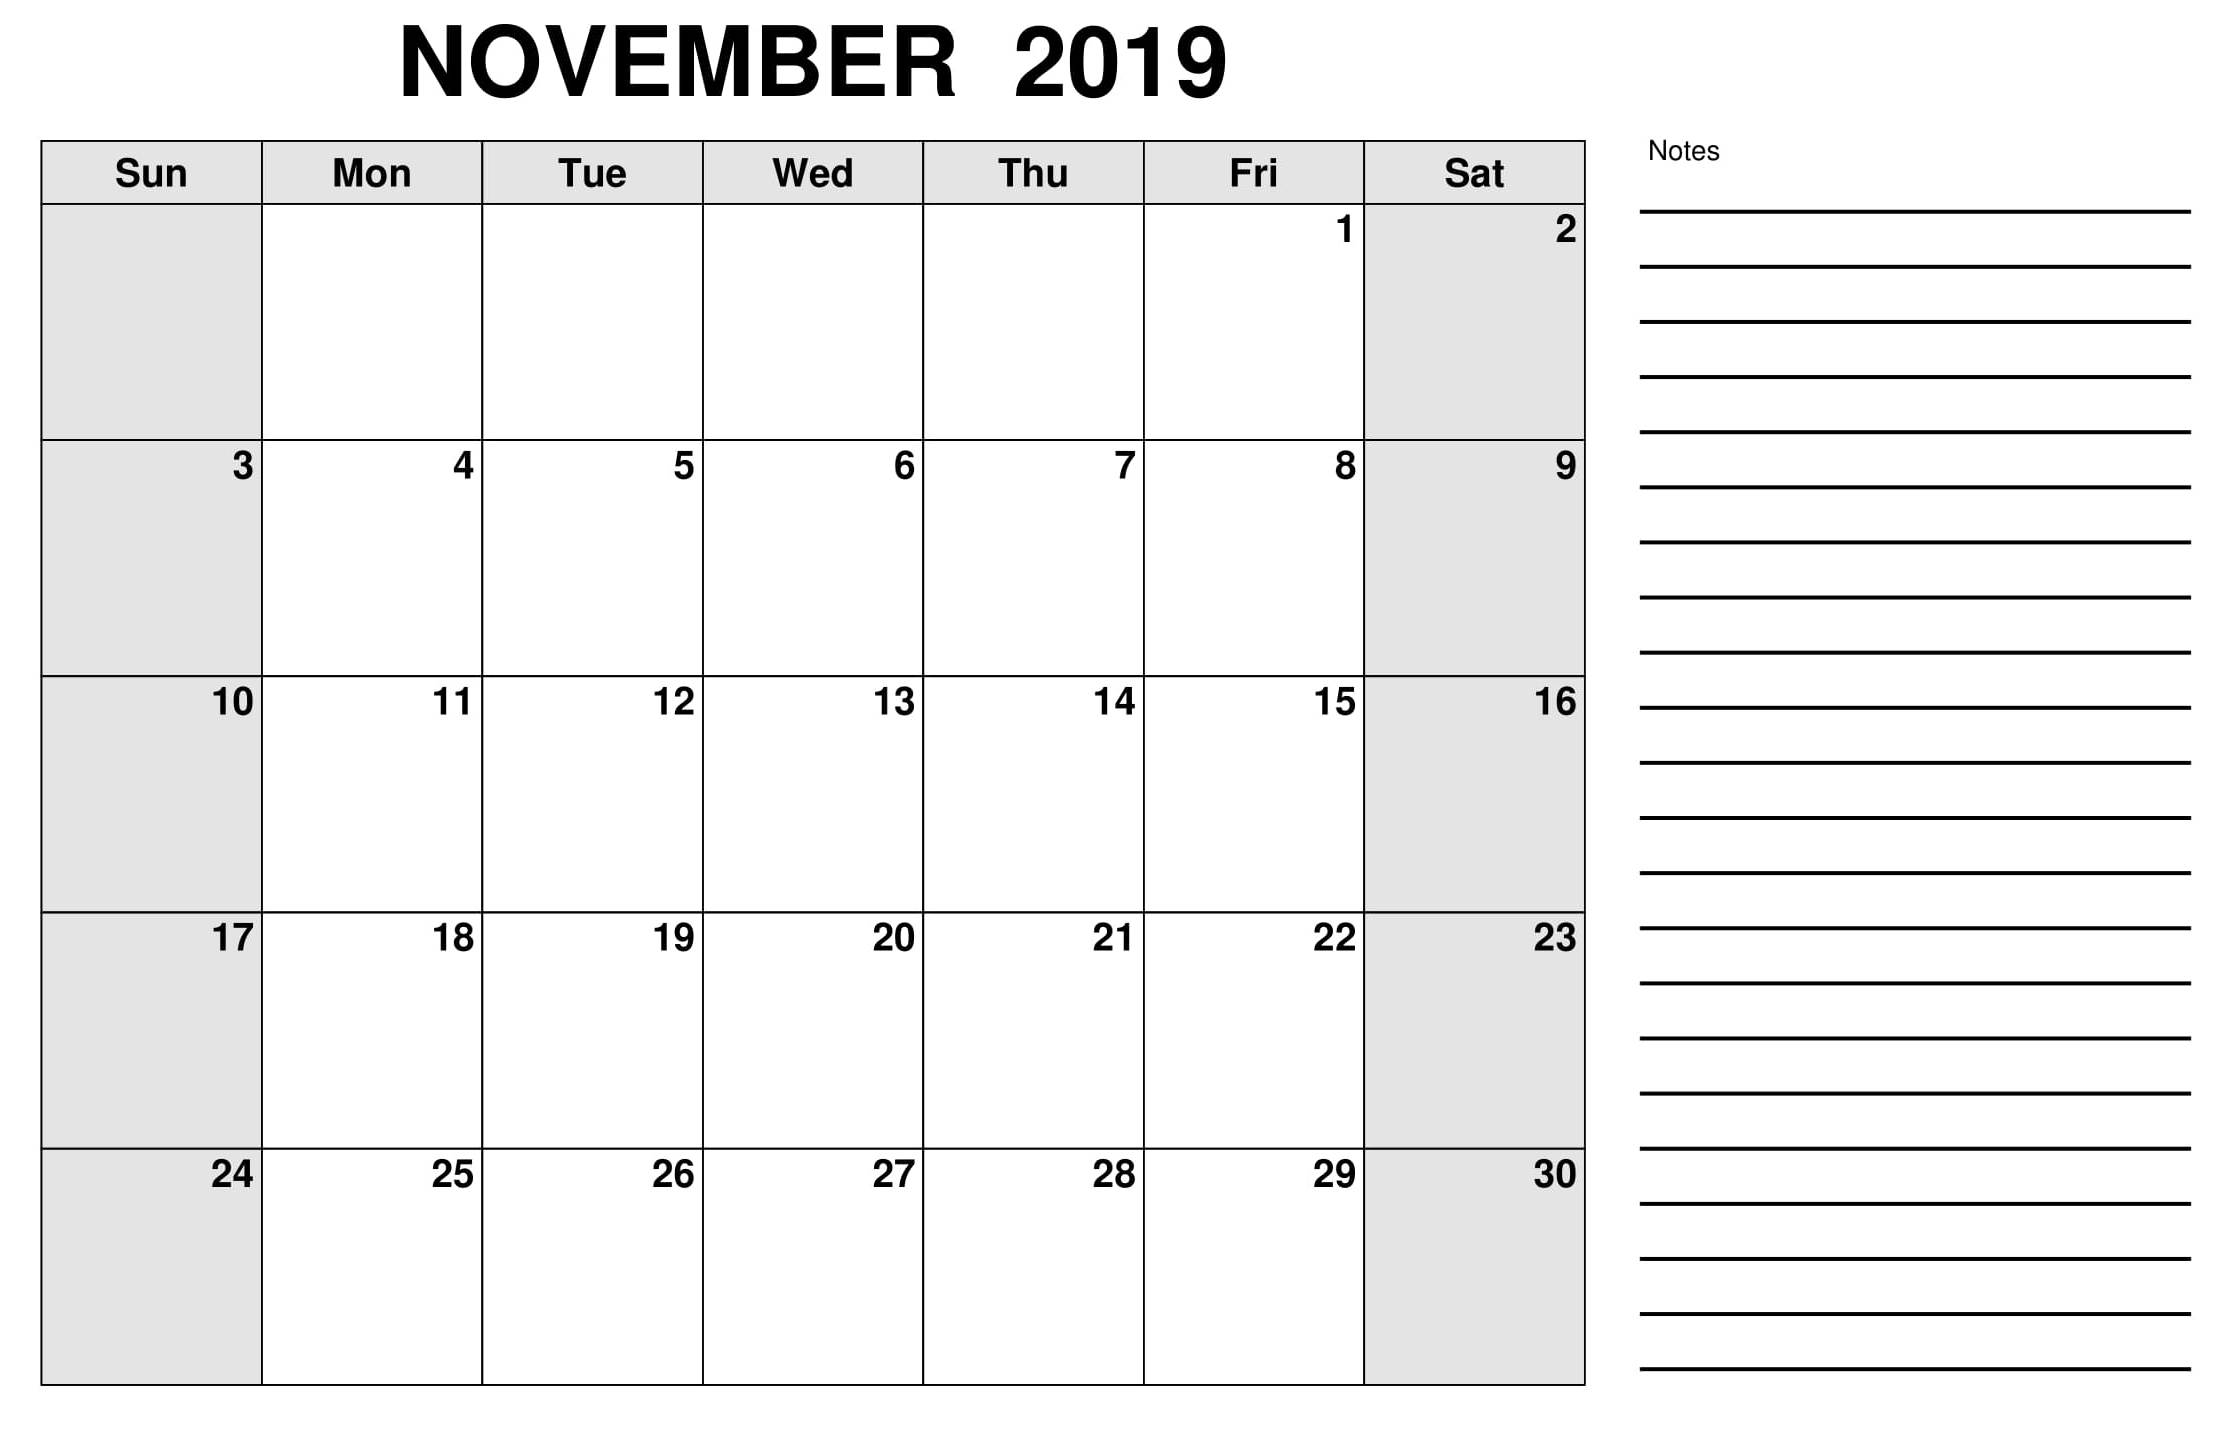 November Calendar For 2019 With Notes